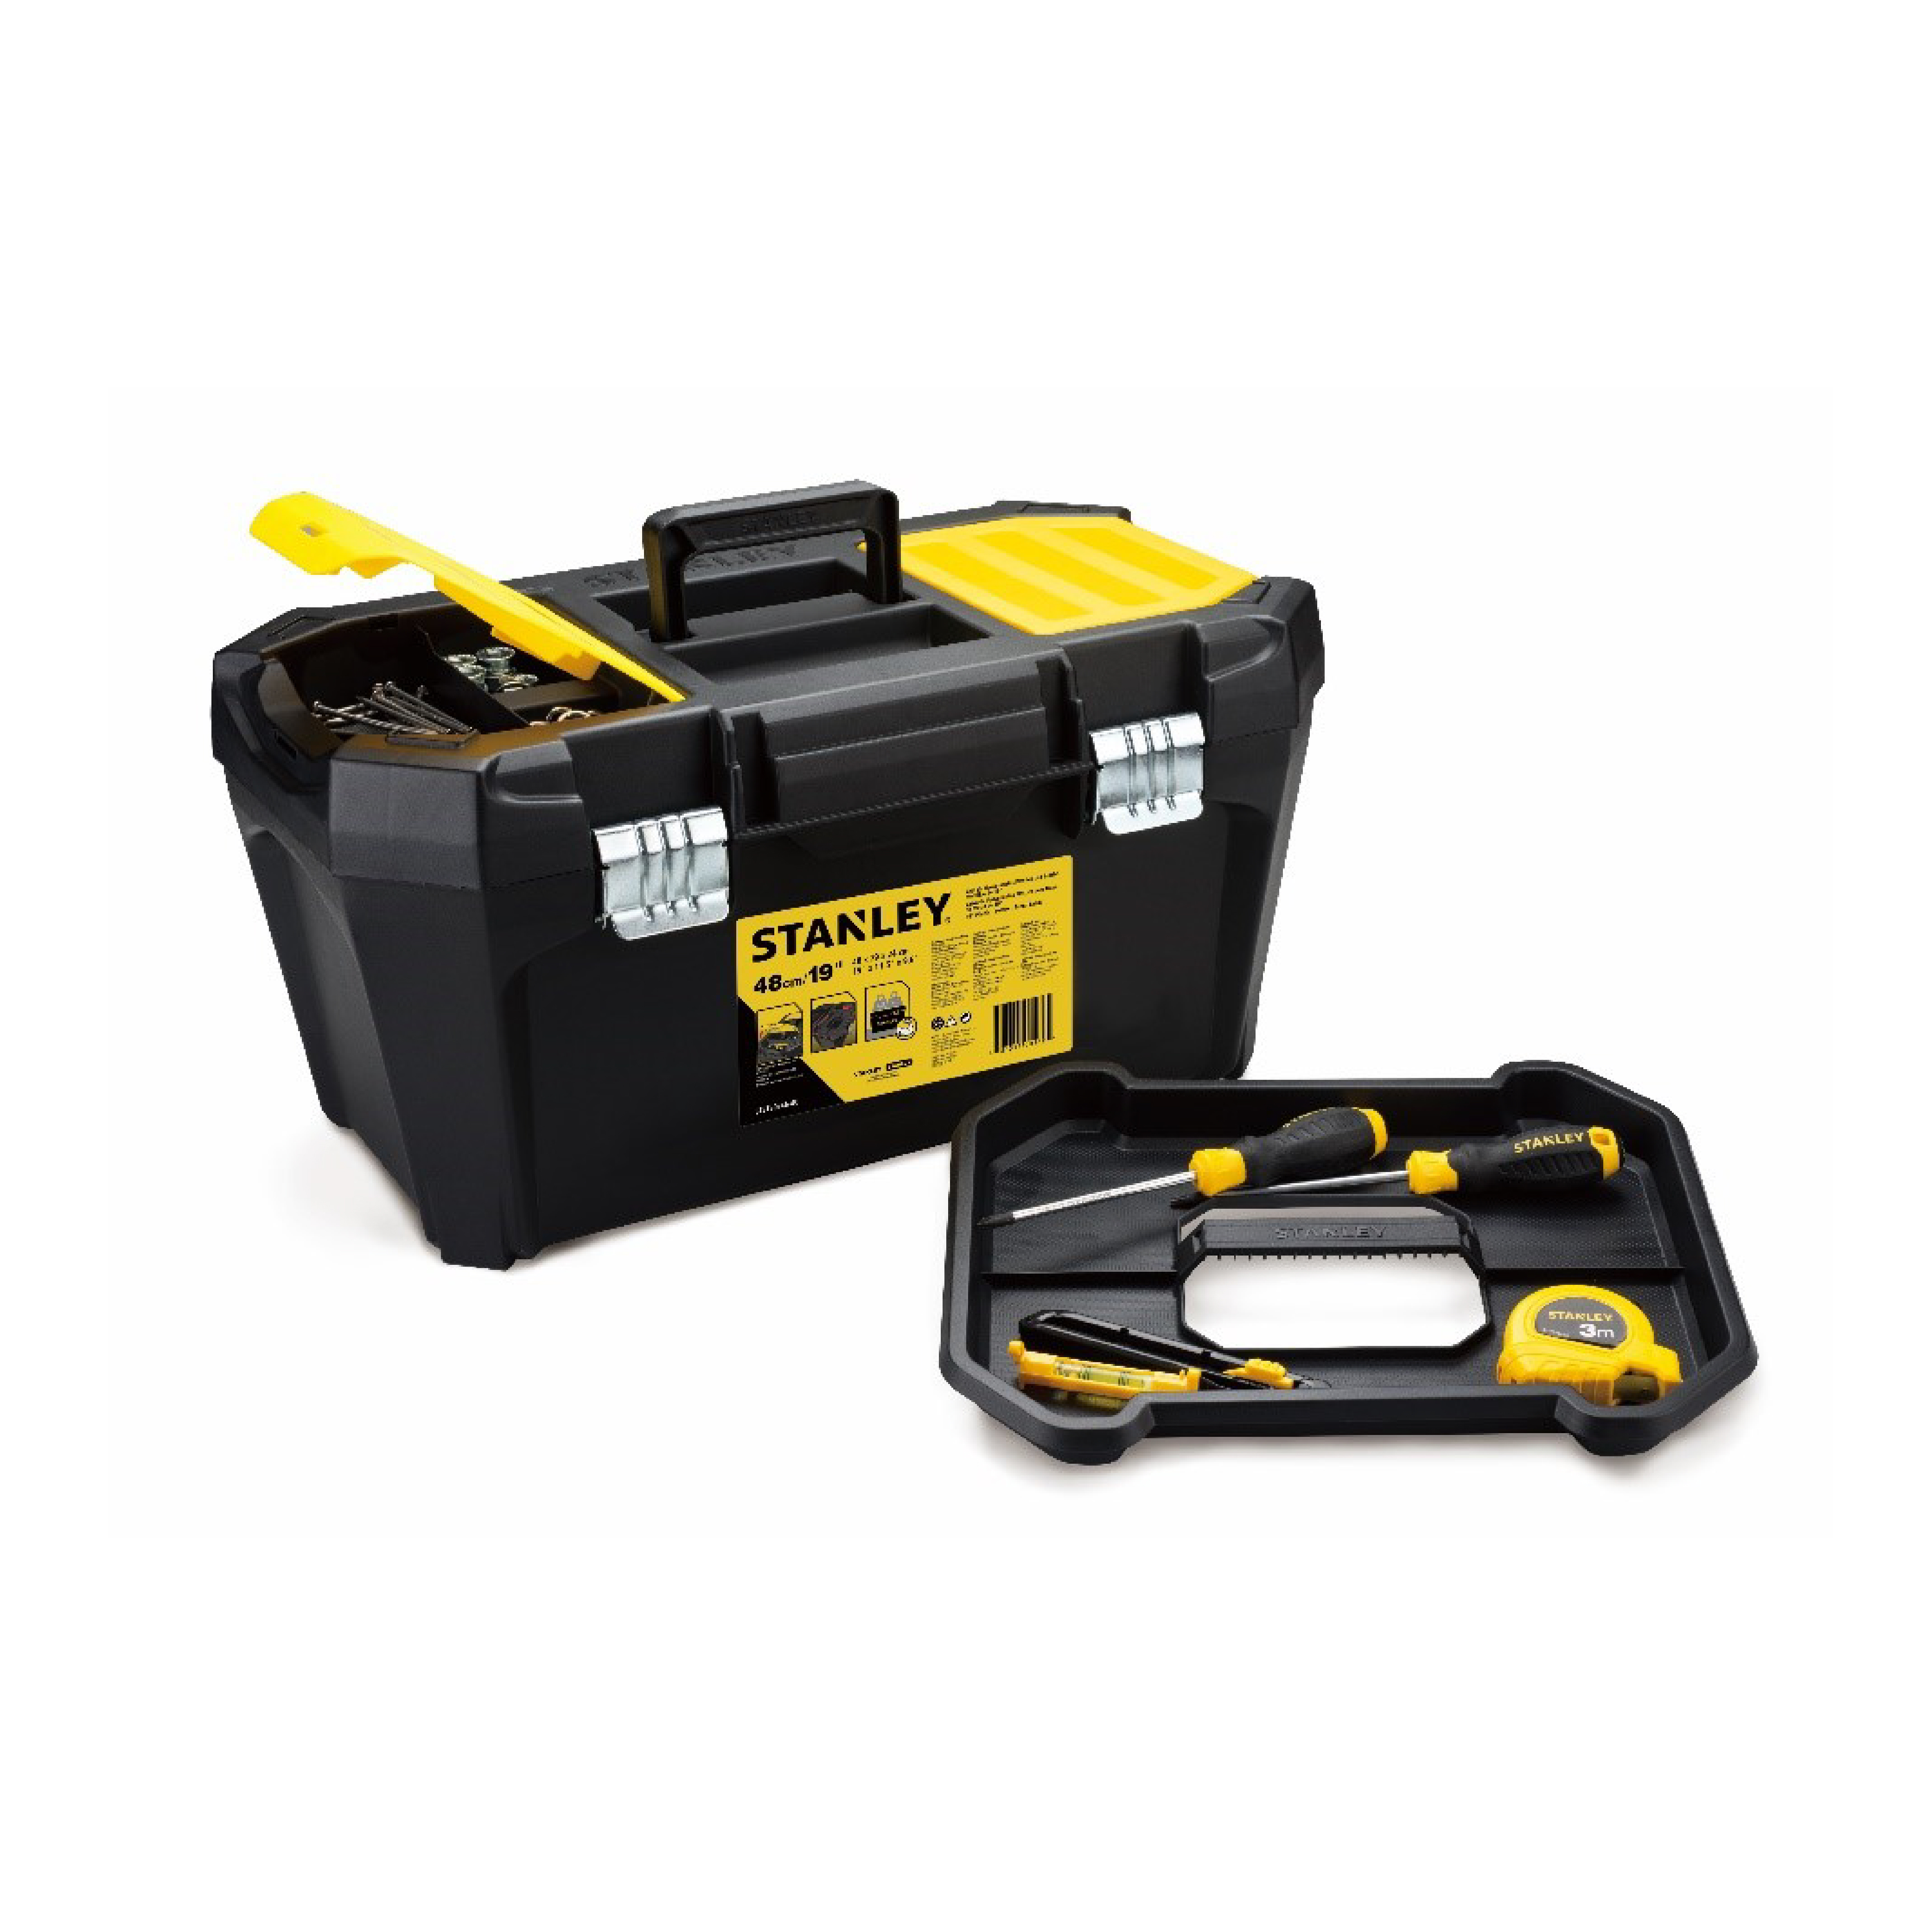 Home | STANLEY Tools